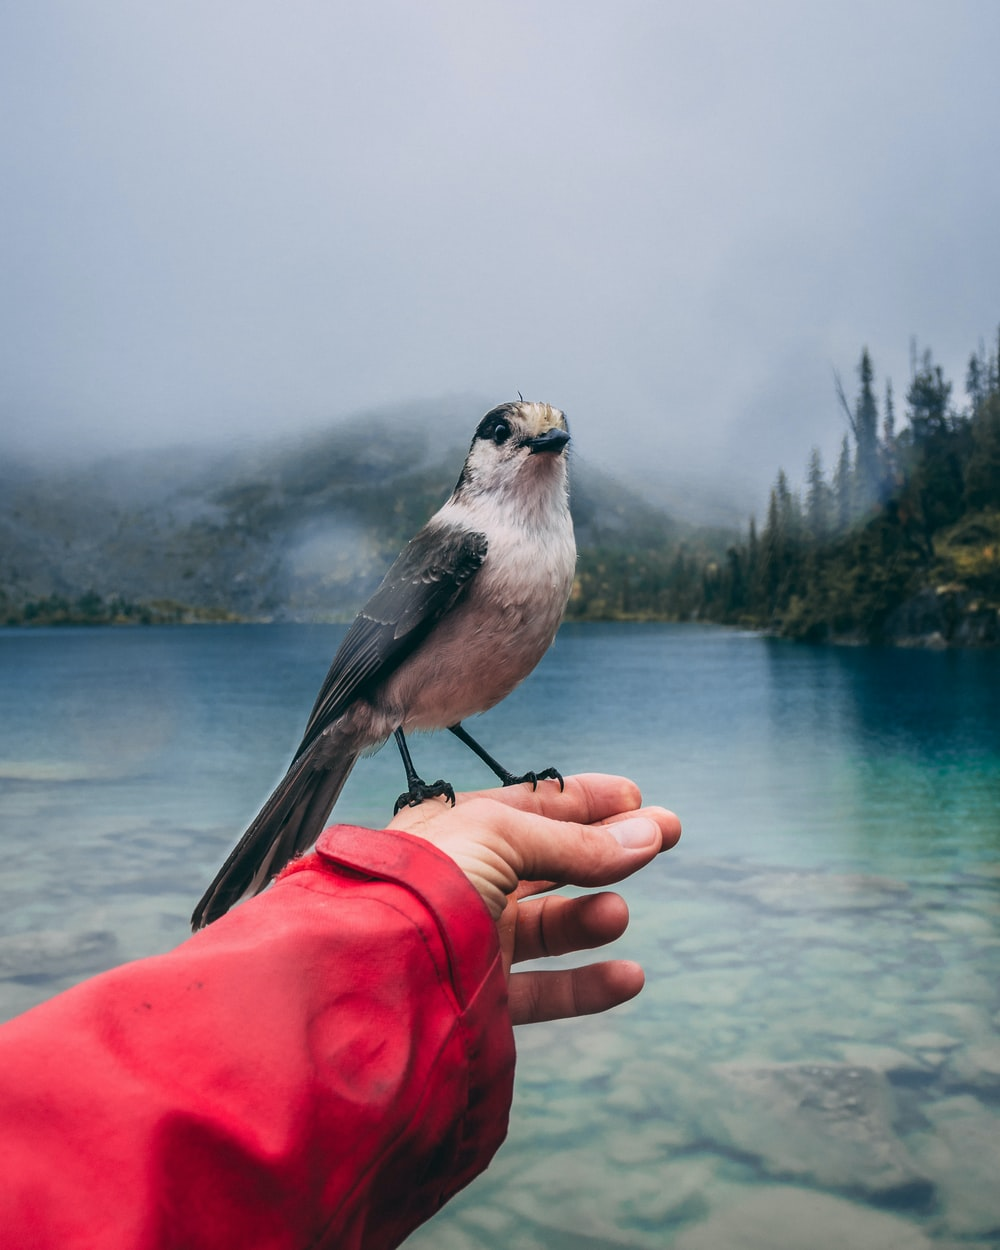 grey and black bird perching on person's left hand near lake